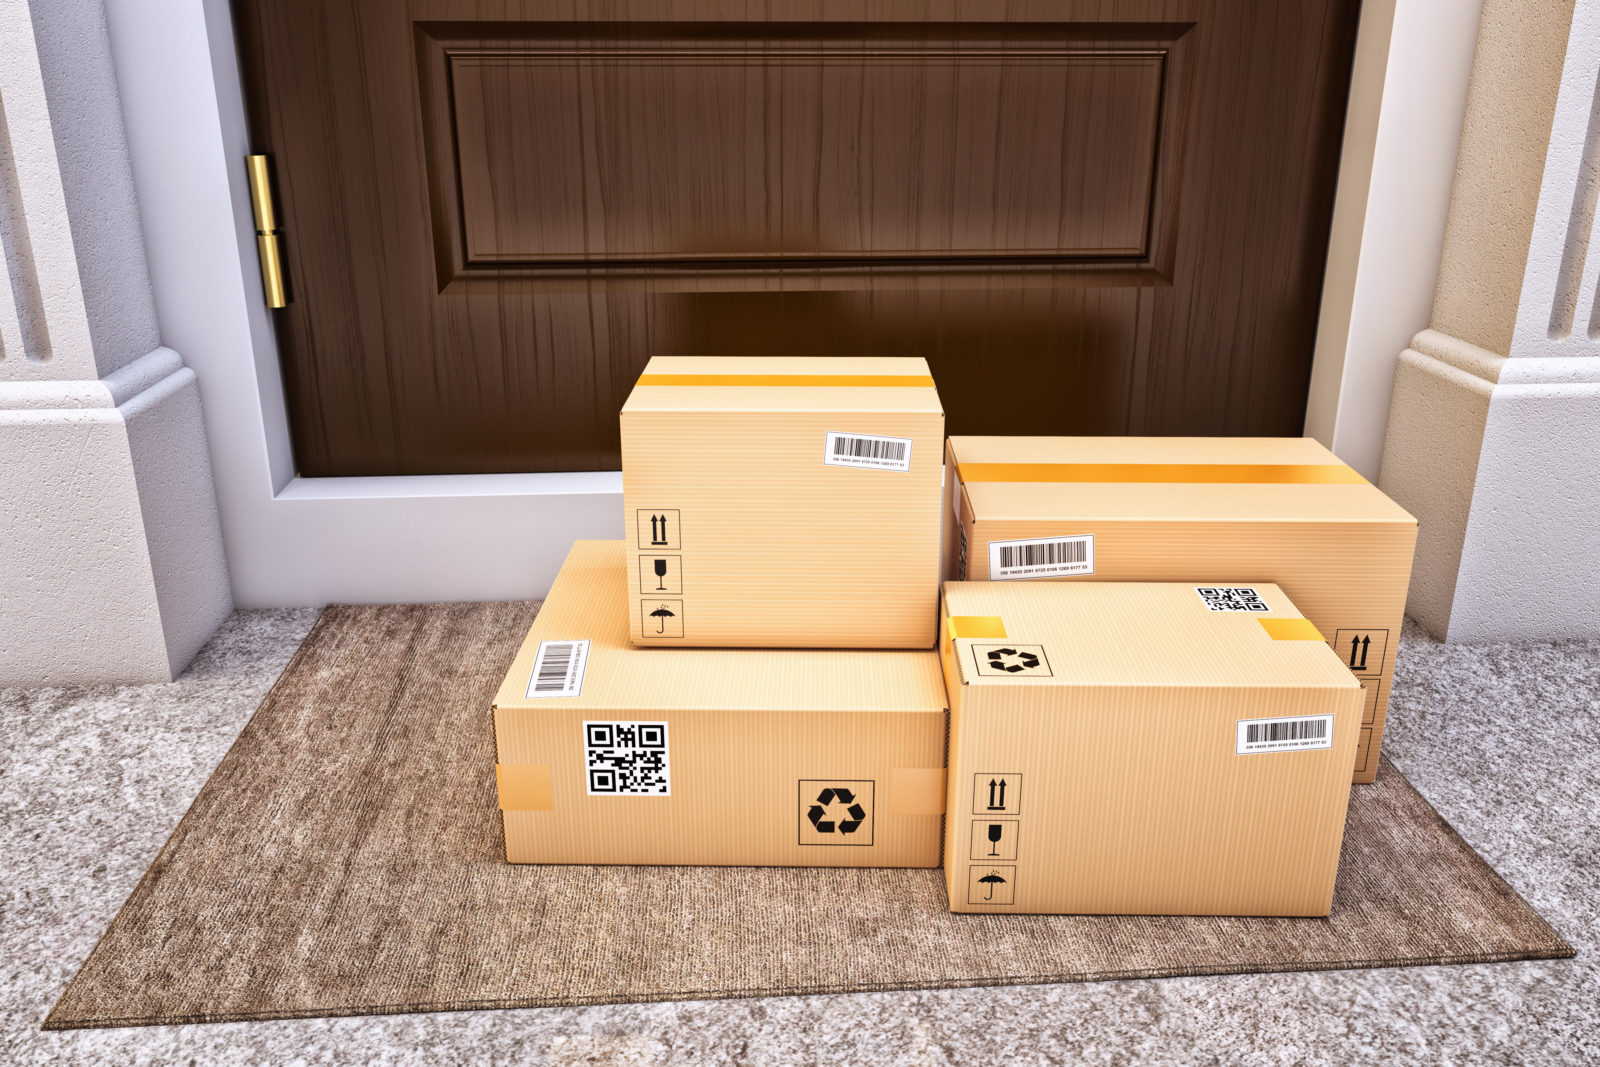 boxes-on-a-doorstep